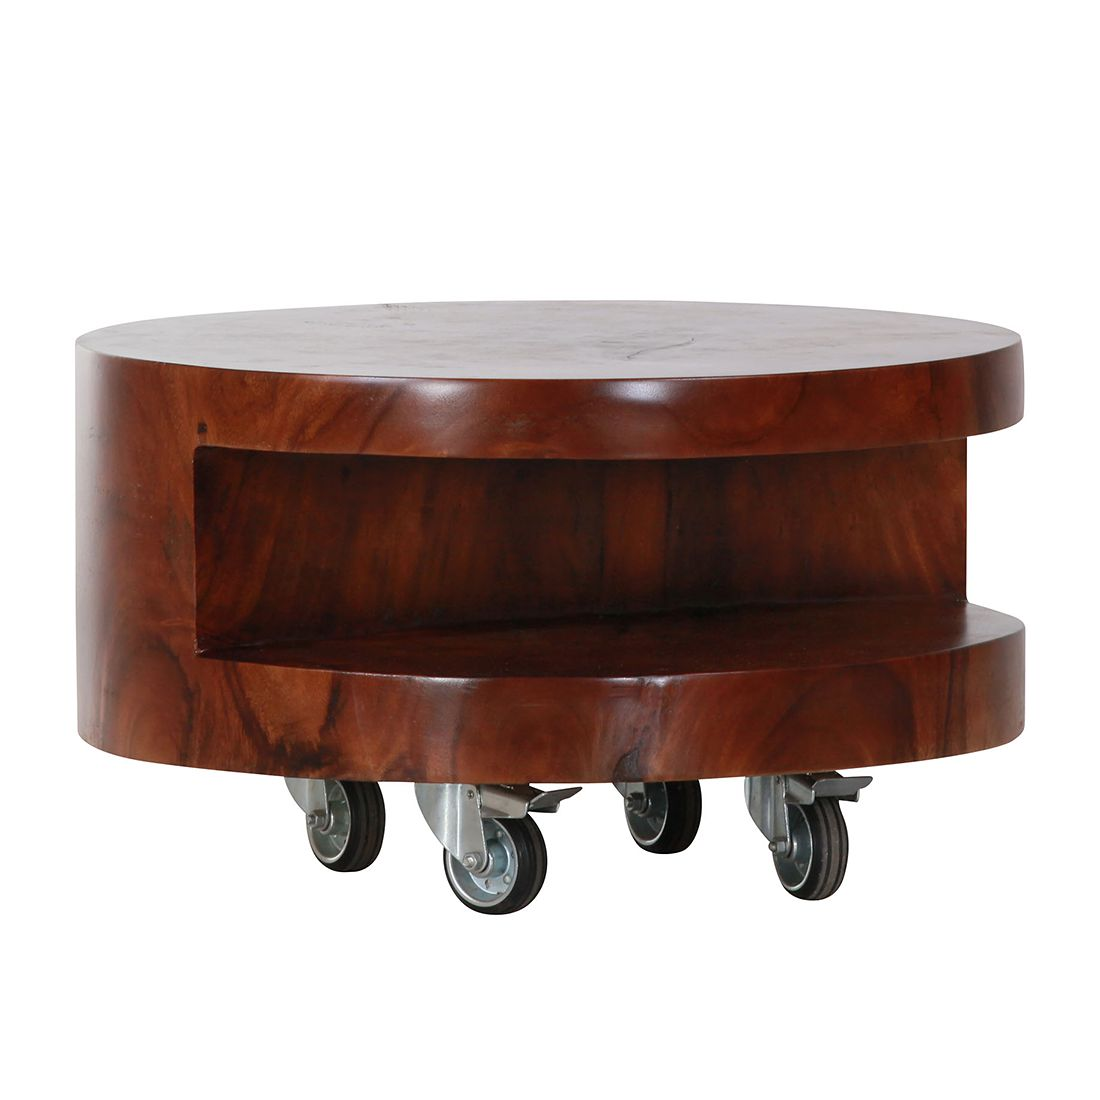 Table basse Tranent